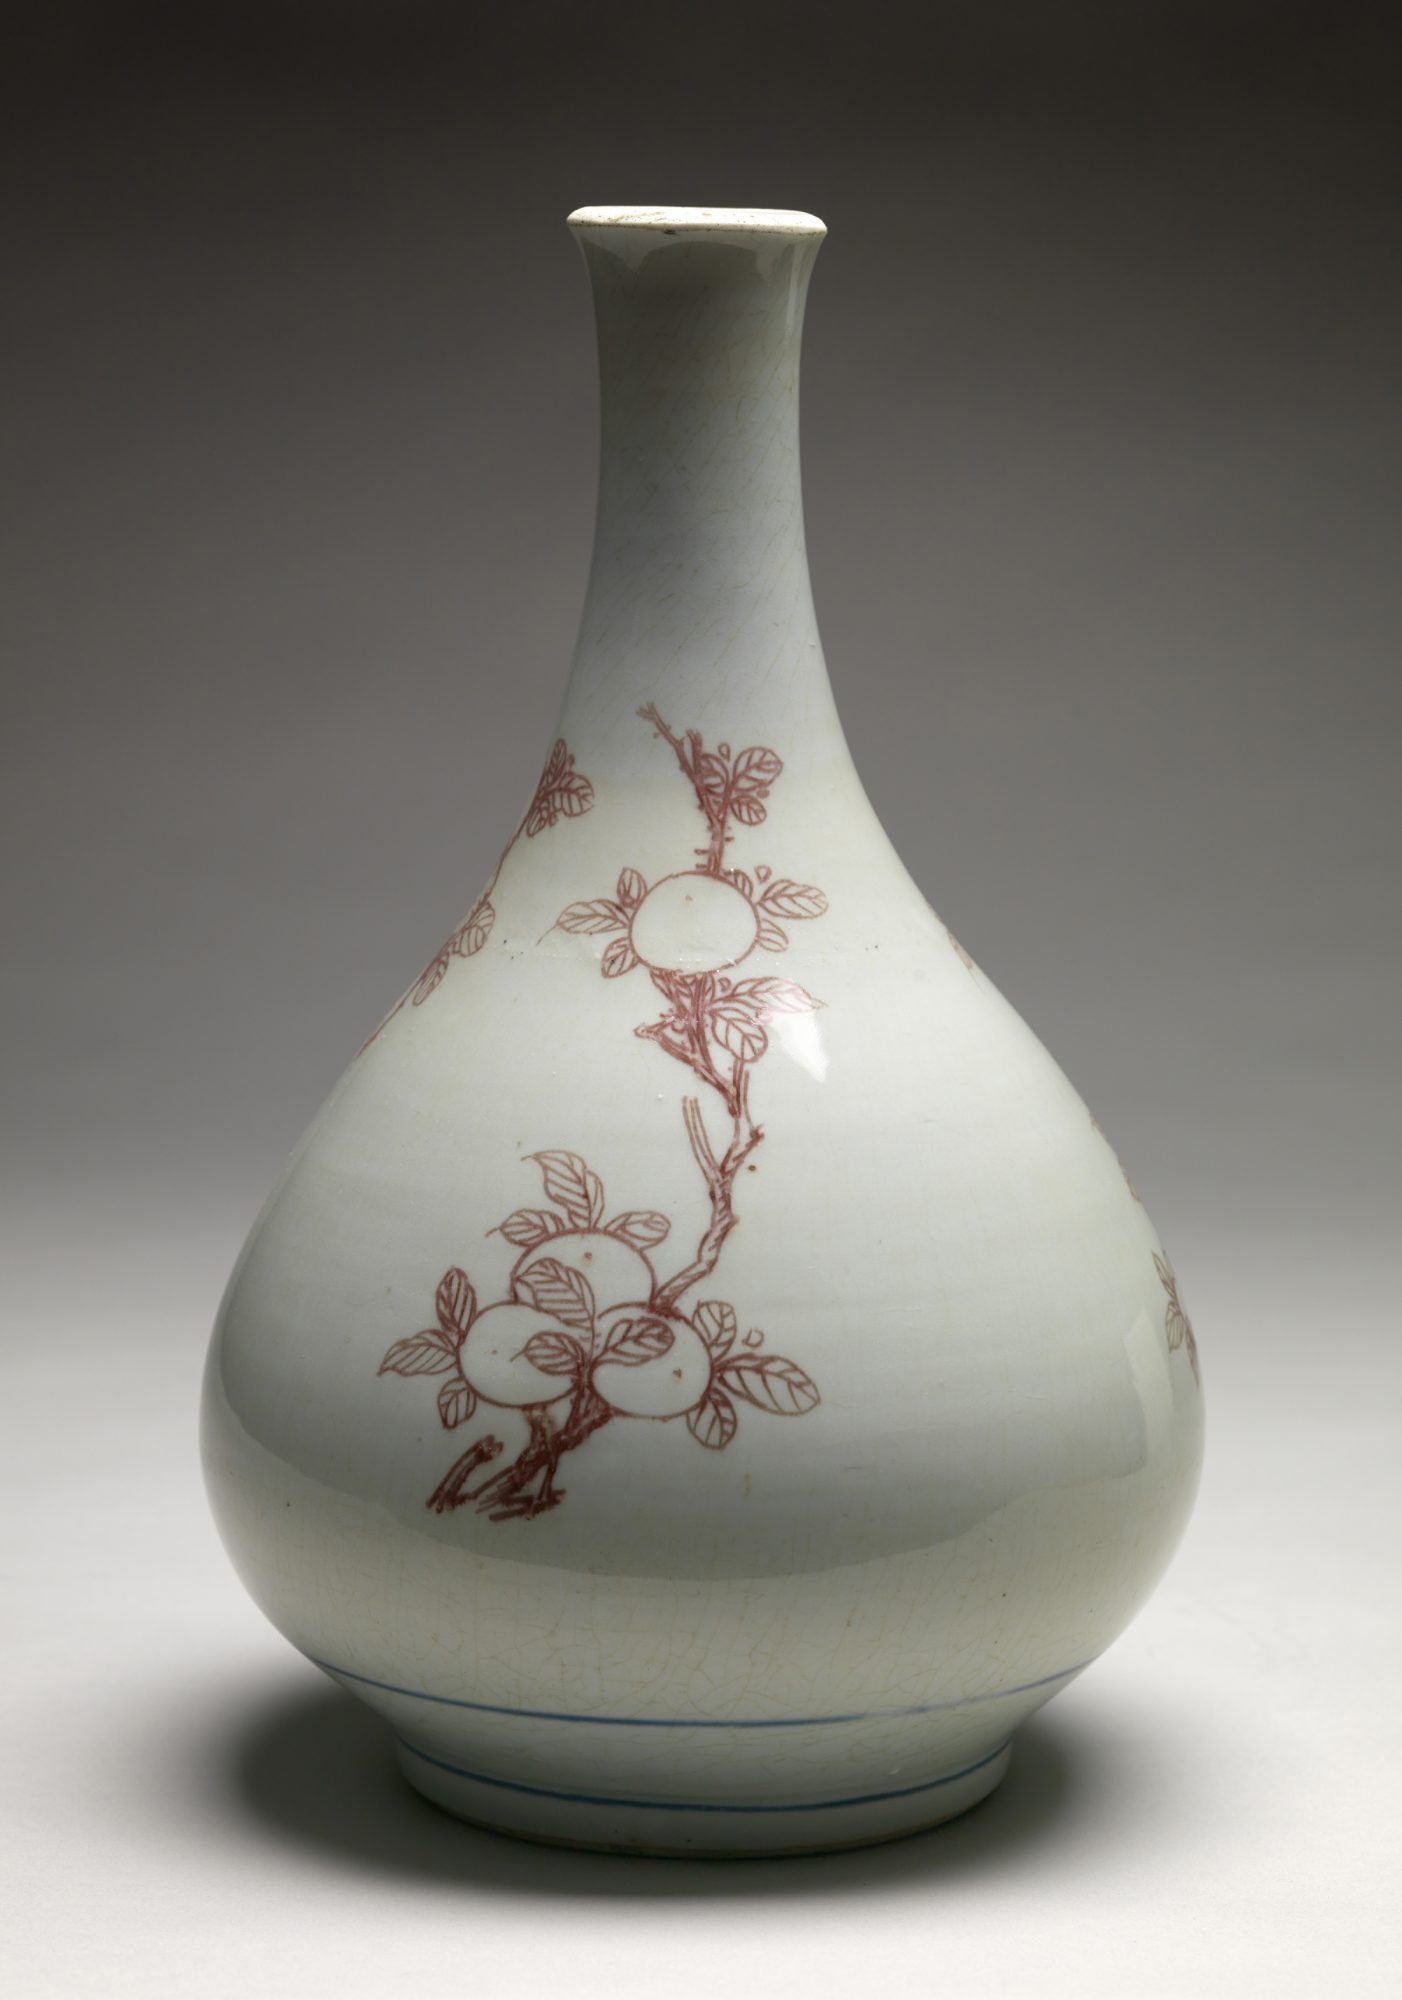 Unknown artist (Chinese) Bottle Vase, Qing Dynasty (1644–1912), K'ang Reign (1662–1722) Bequest of Mrs. Henry S. Sanders, 62.17